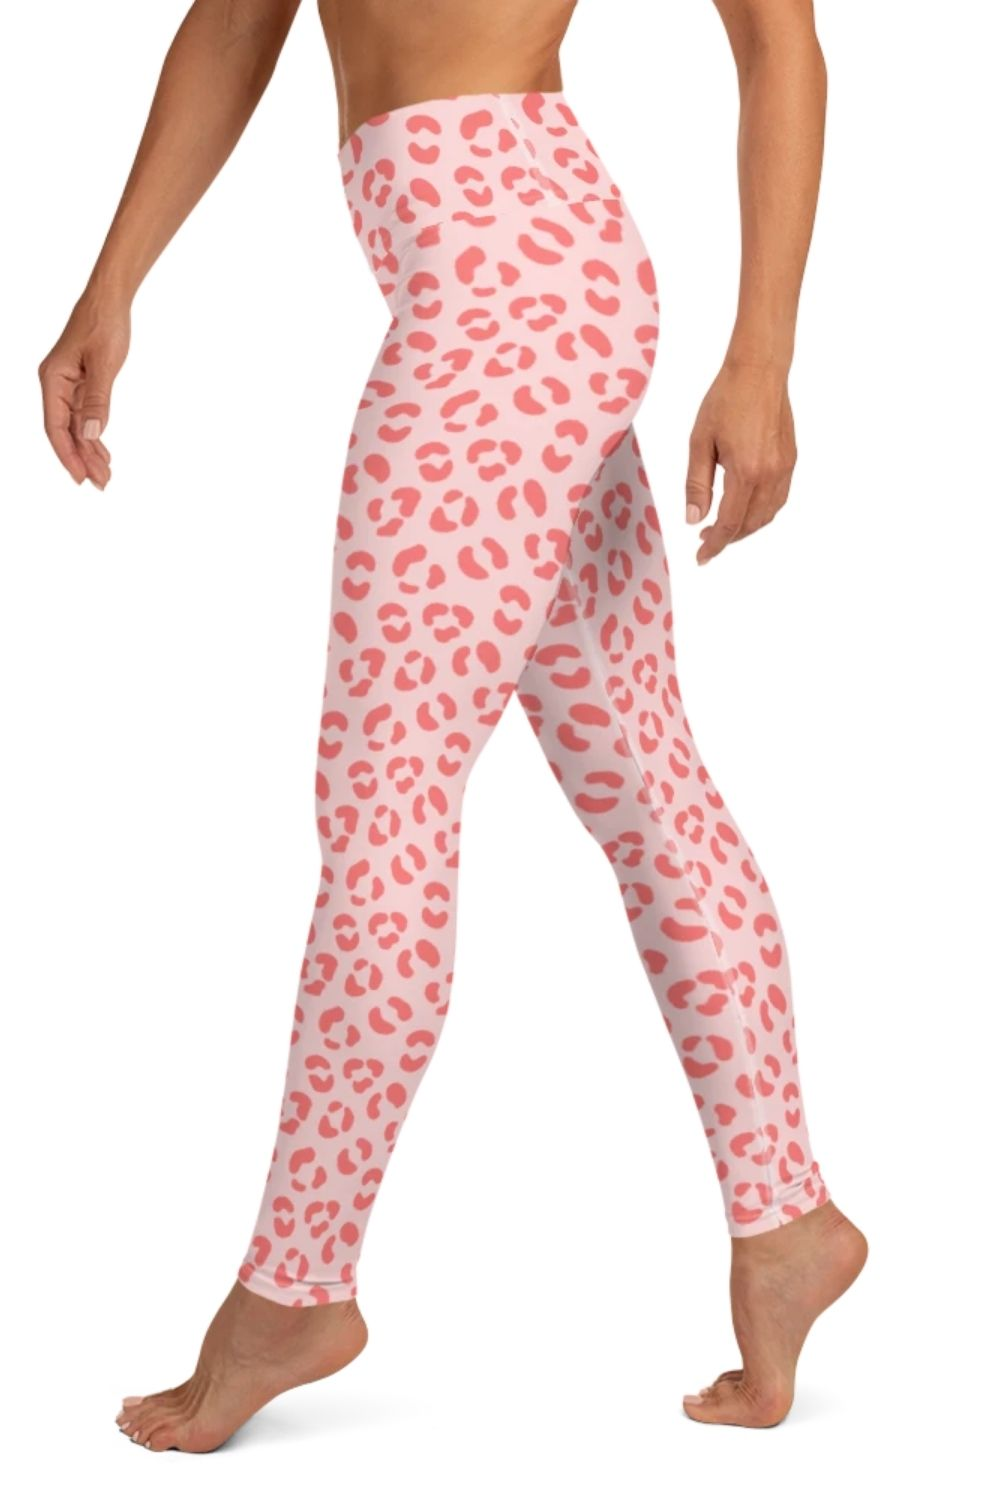 Pink Panther Yoga Leggings